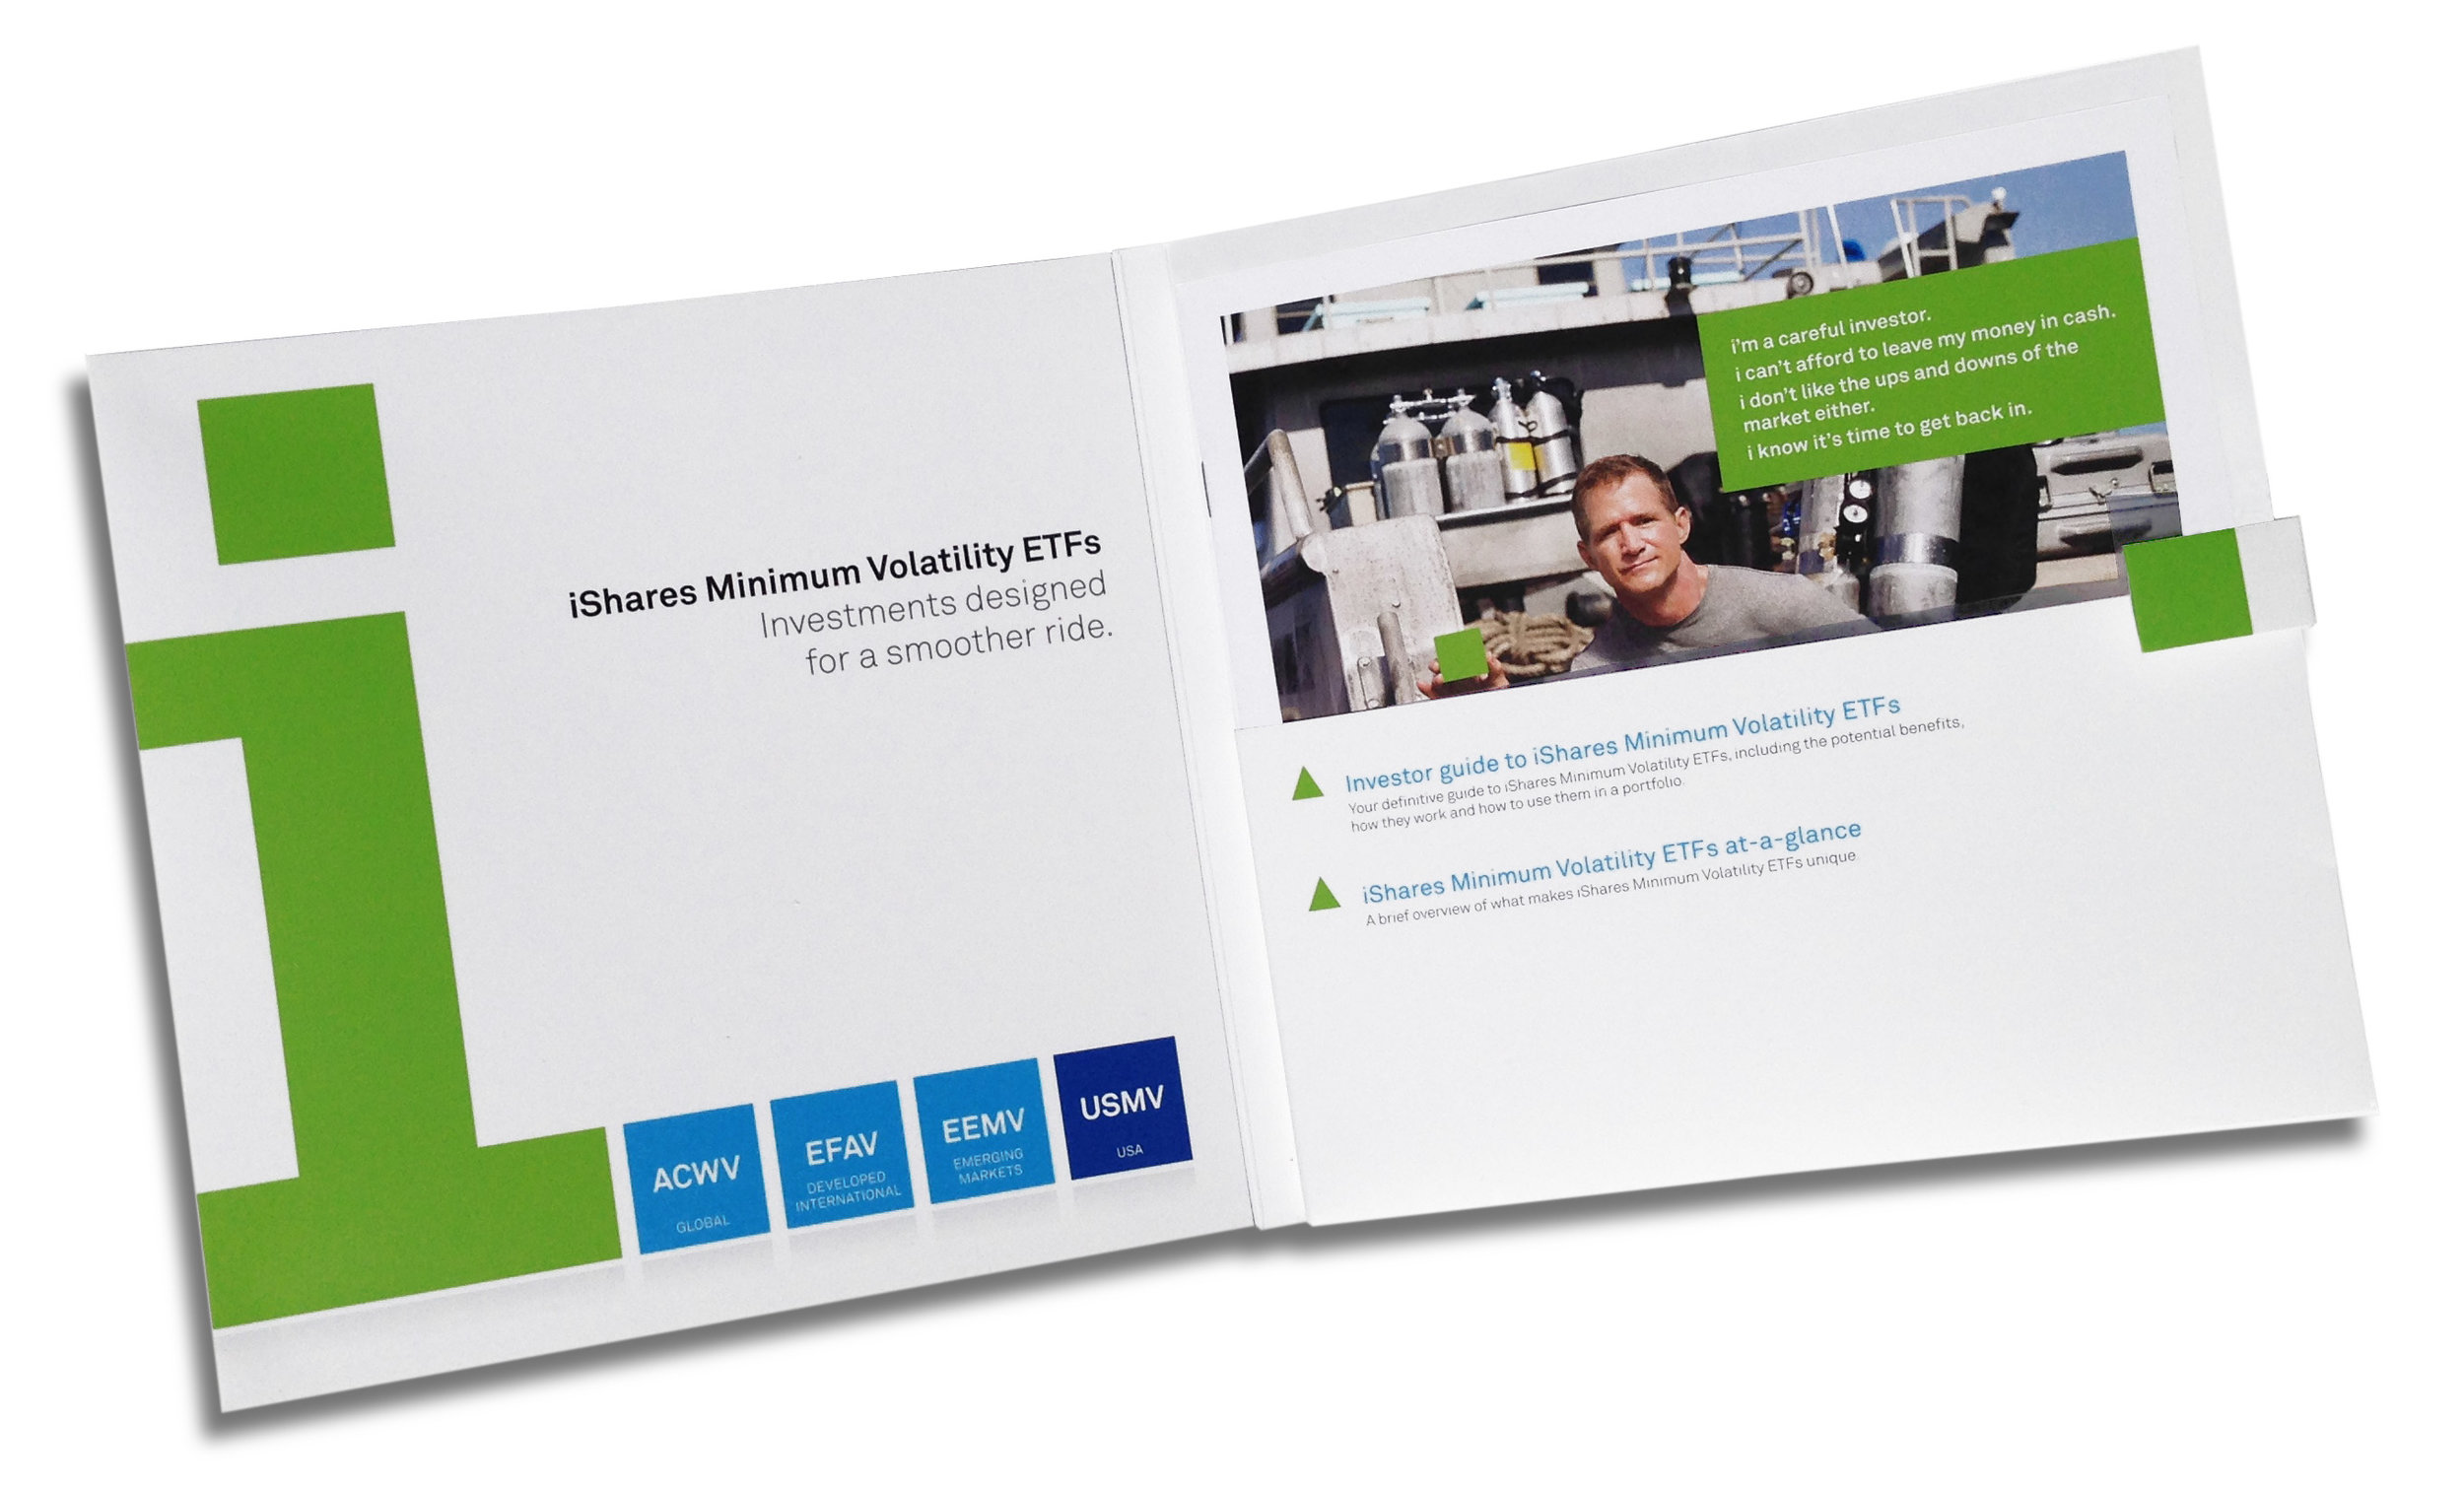 Folder with investor guide and product overview